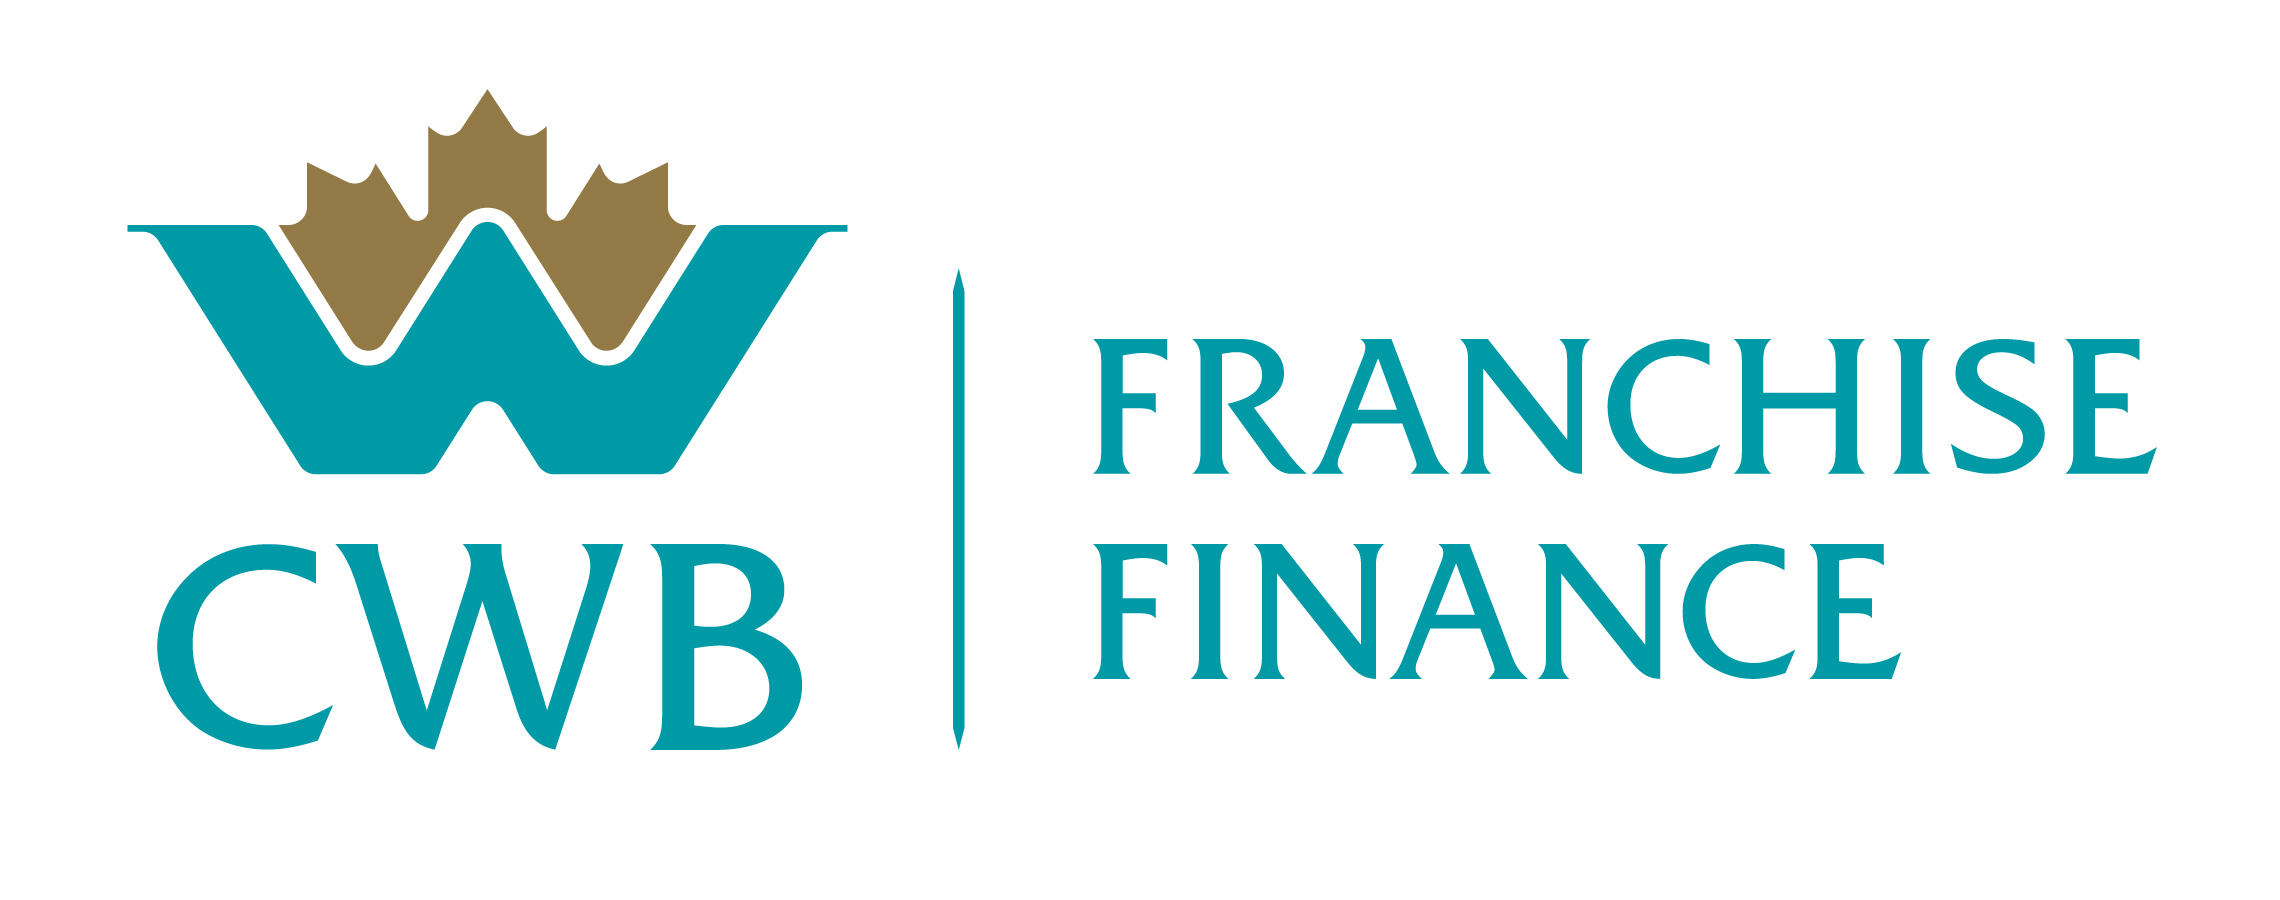 CWB Franchise Finance Logo